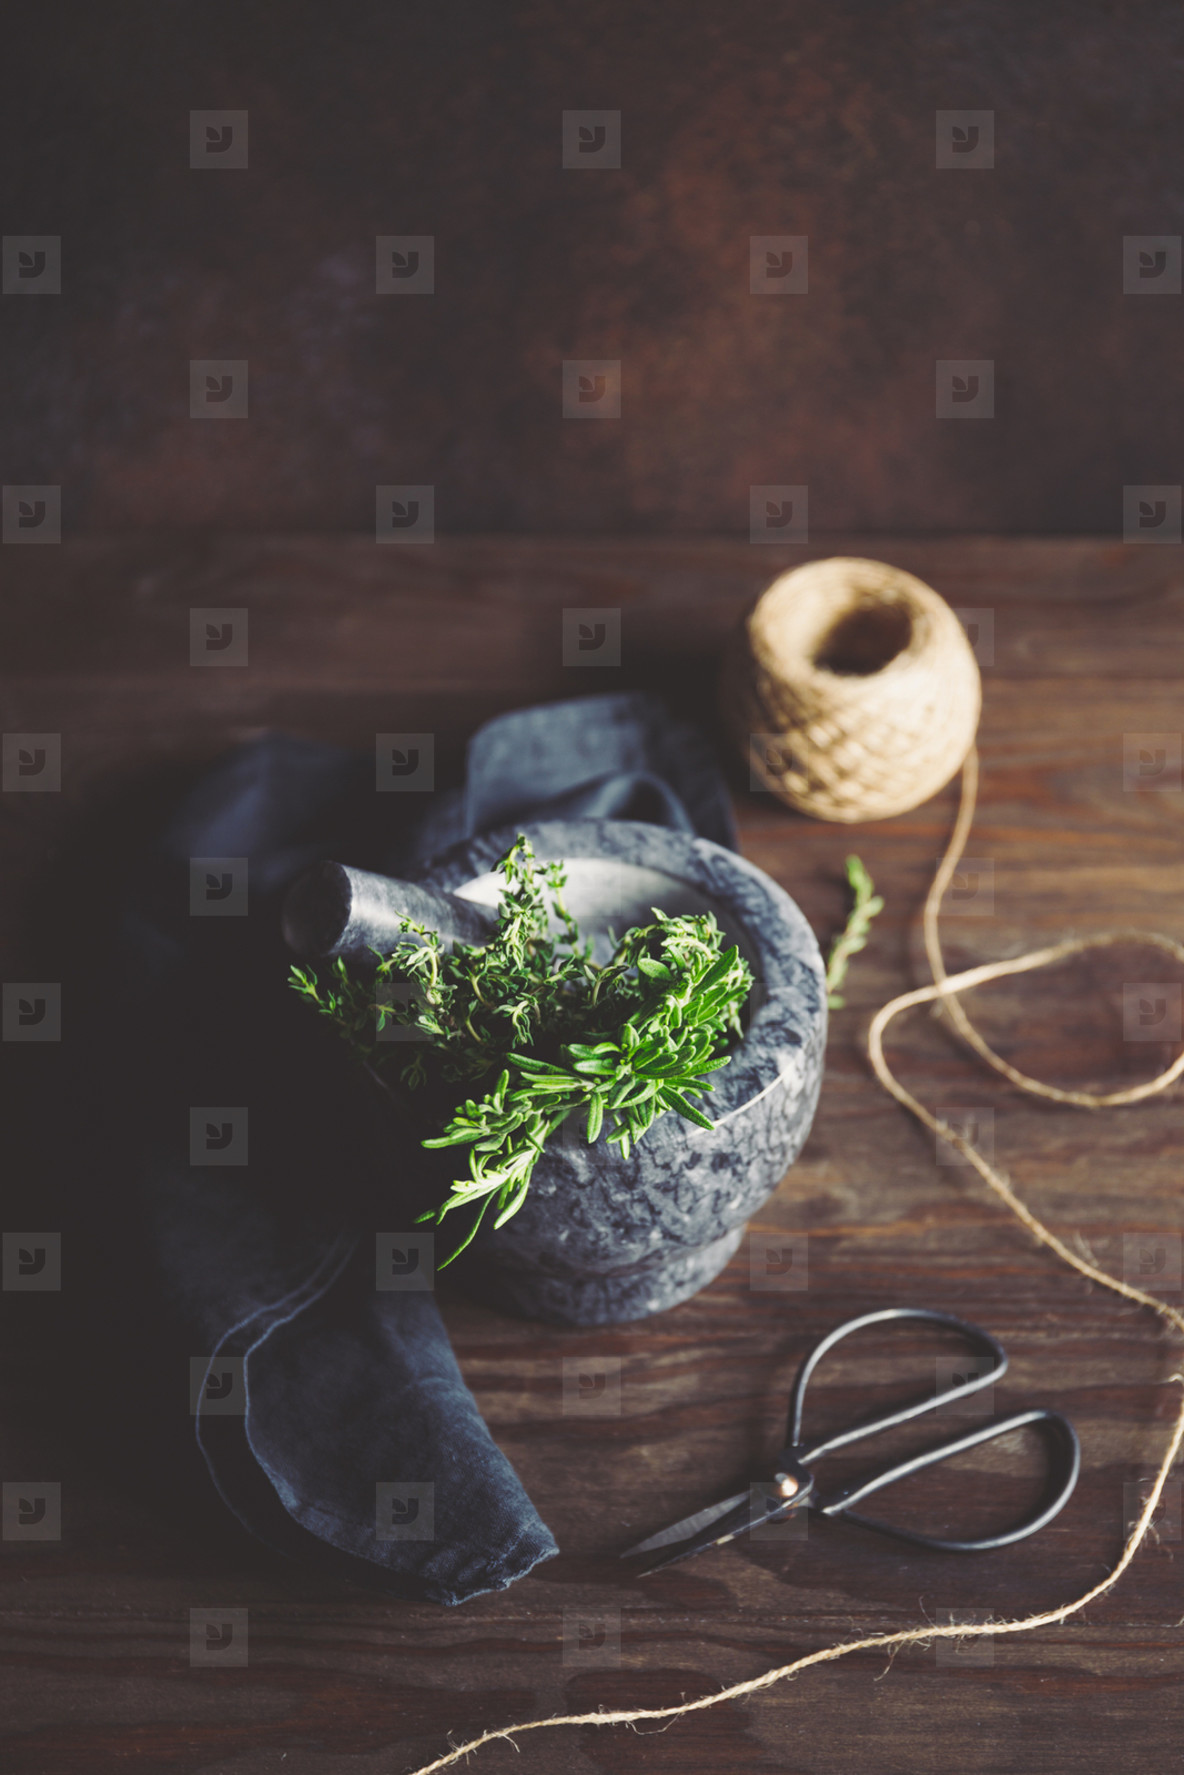 Fresh herbs in a marble mortar on a table  Rustic style food photography  top view